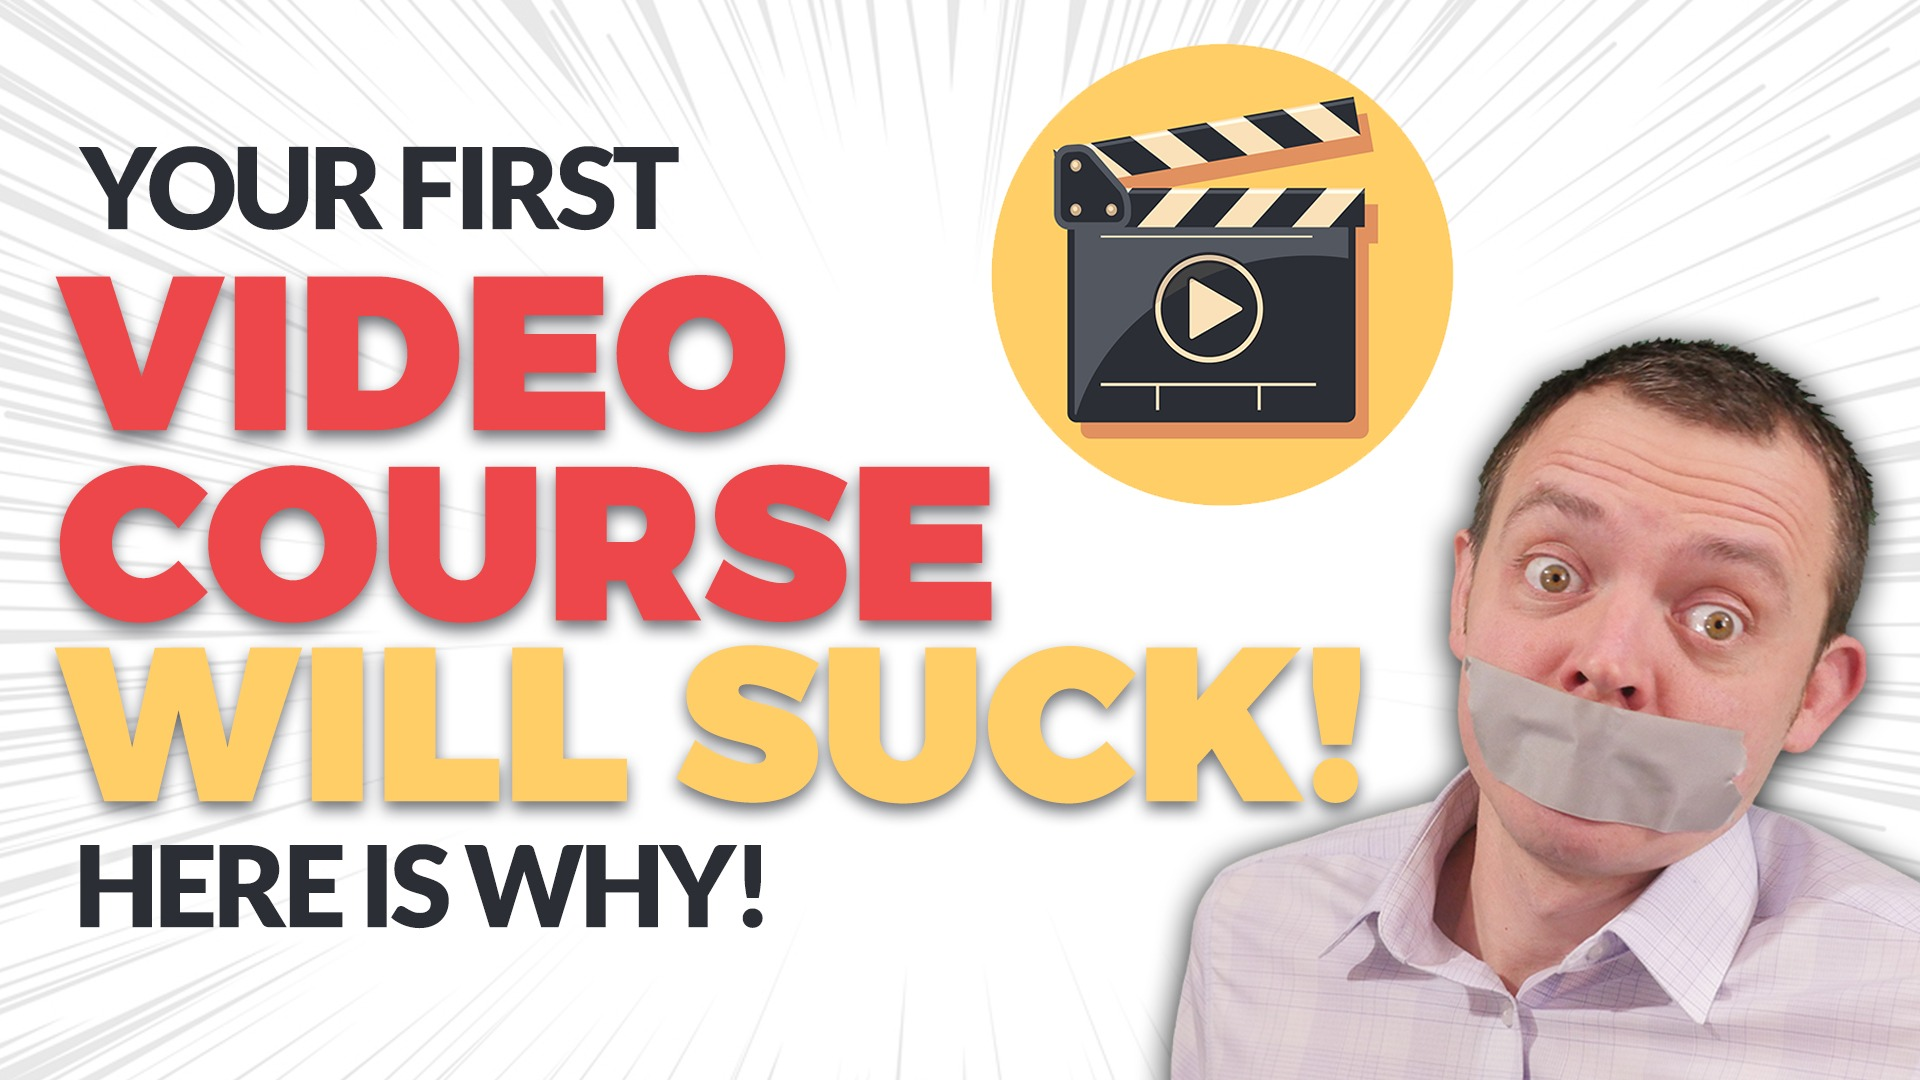 Why Your First Video Course Will Suck!